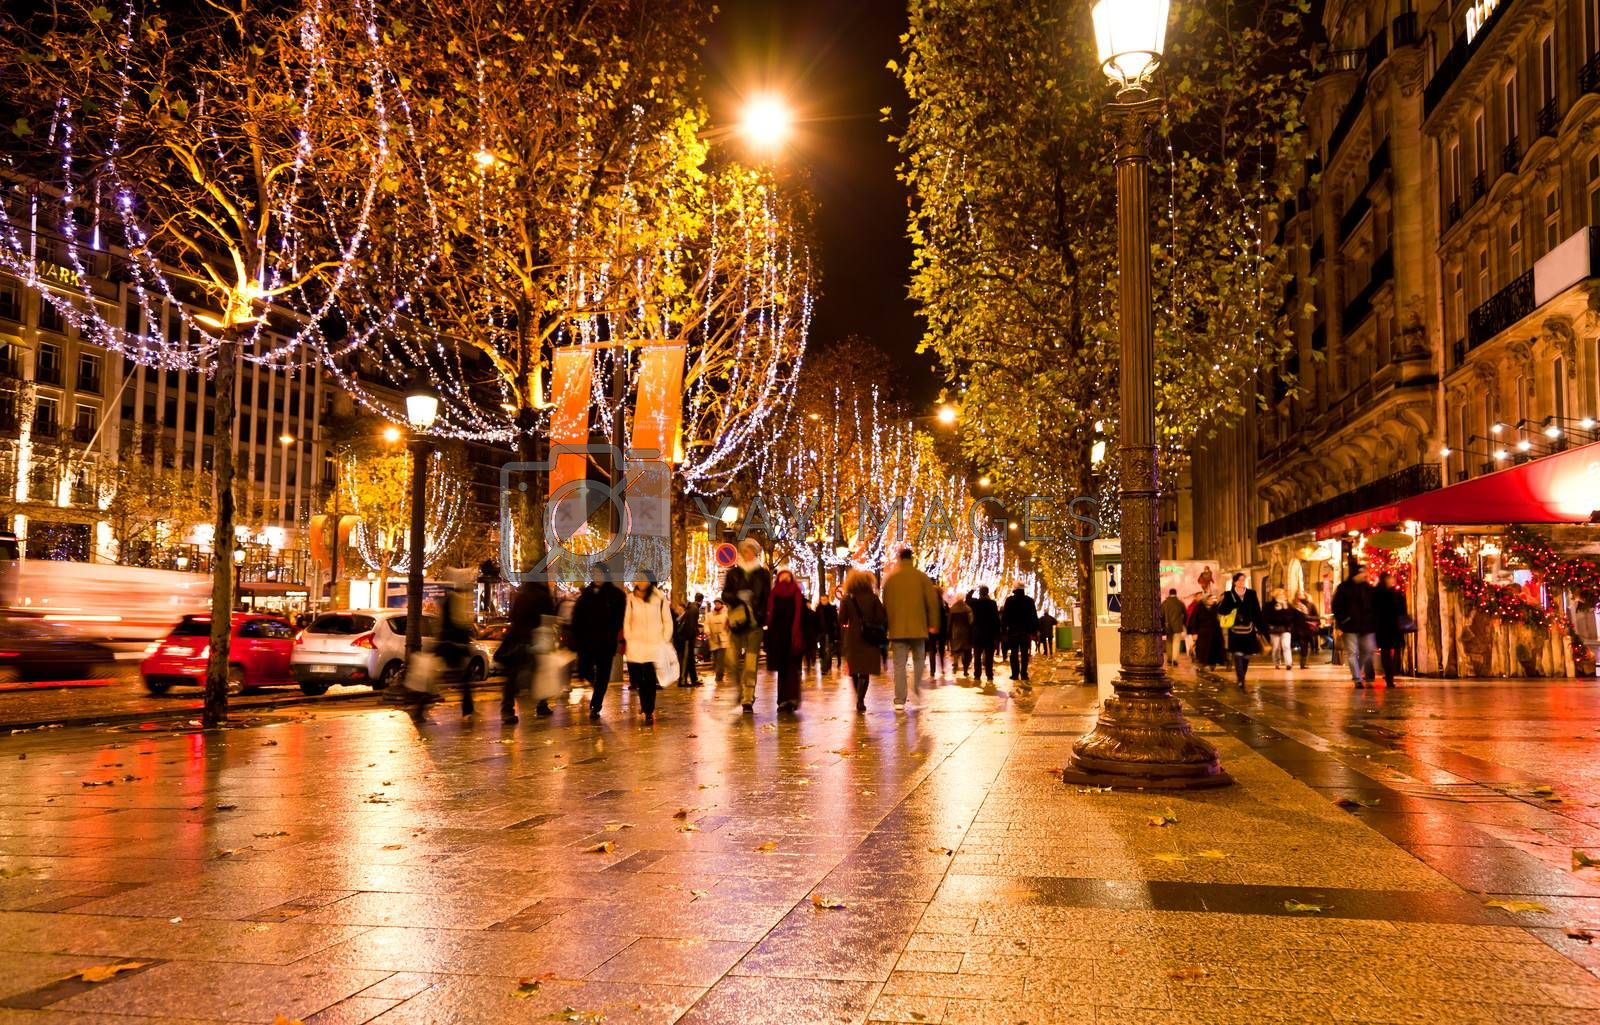 the famous shooping district Champs Elysees illuminated with Christmas light in Paris